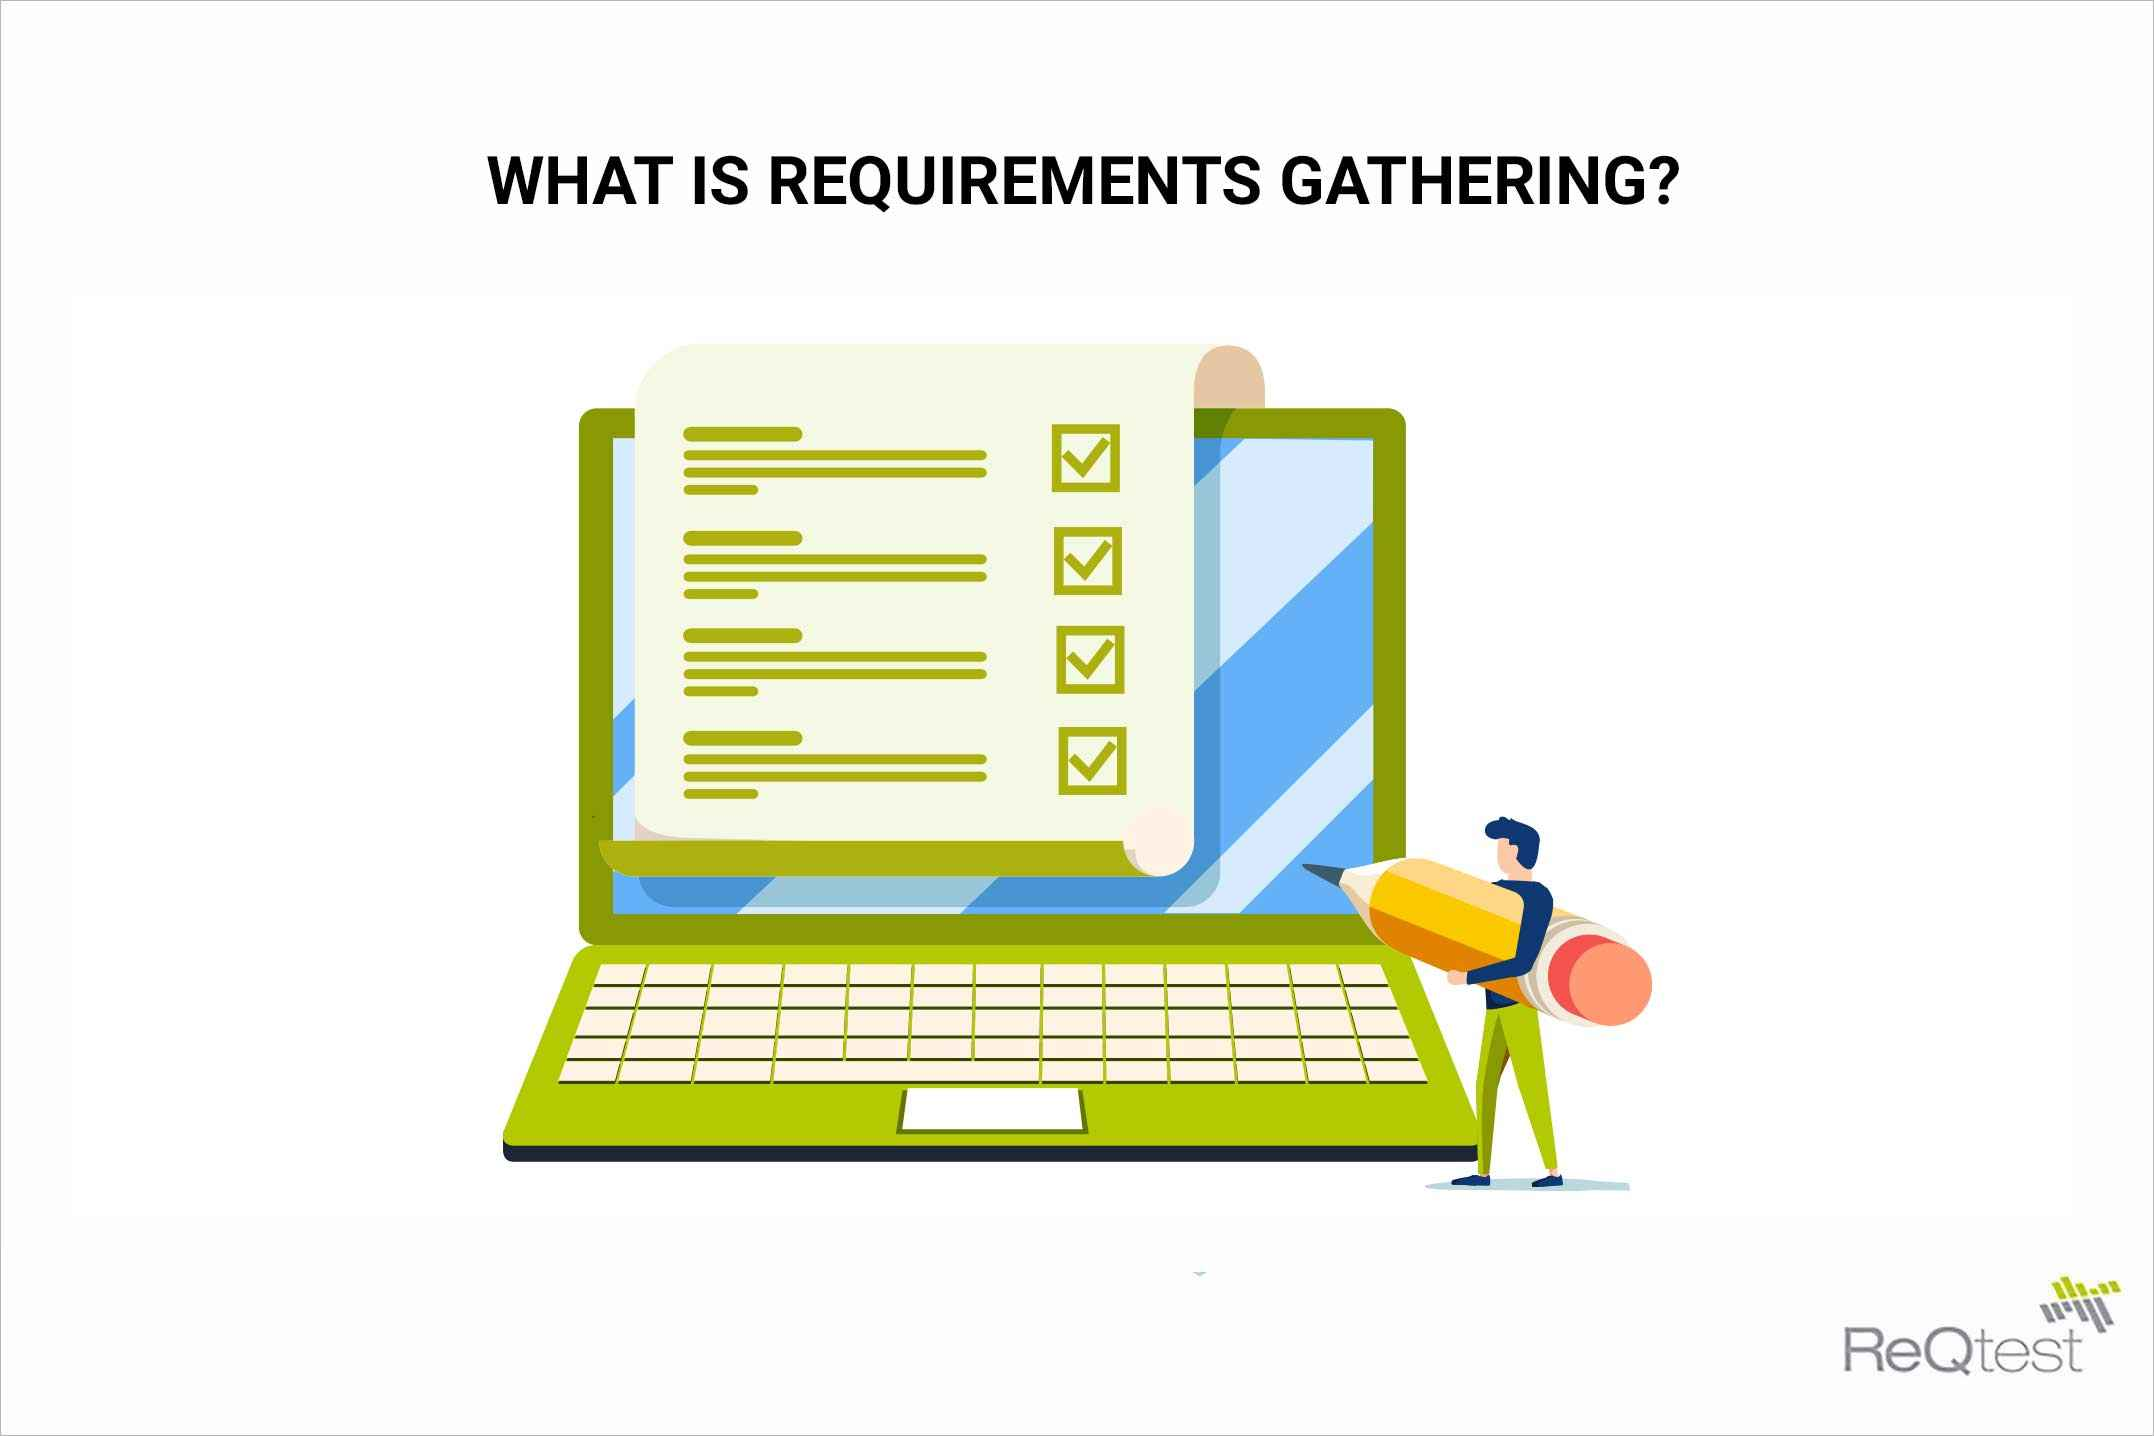 what is requirements Gathering